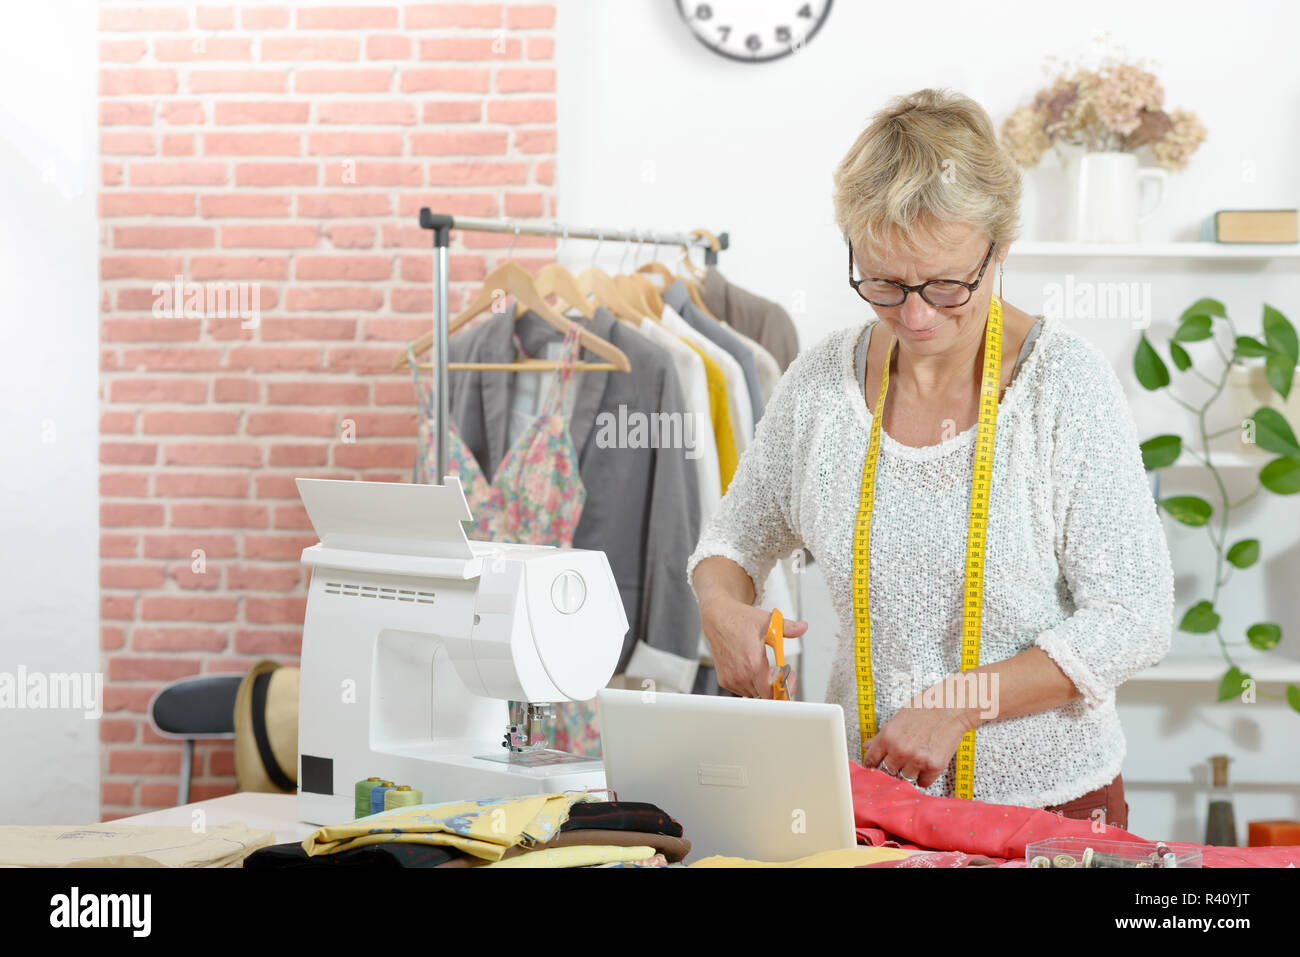 blonde woman in a sewing workshop Stock Photo